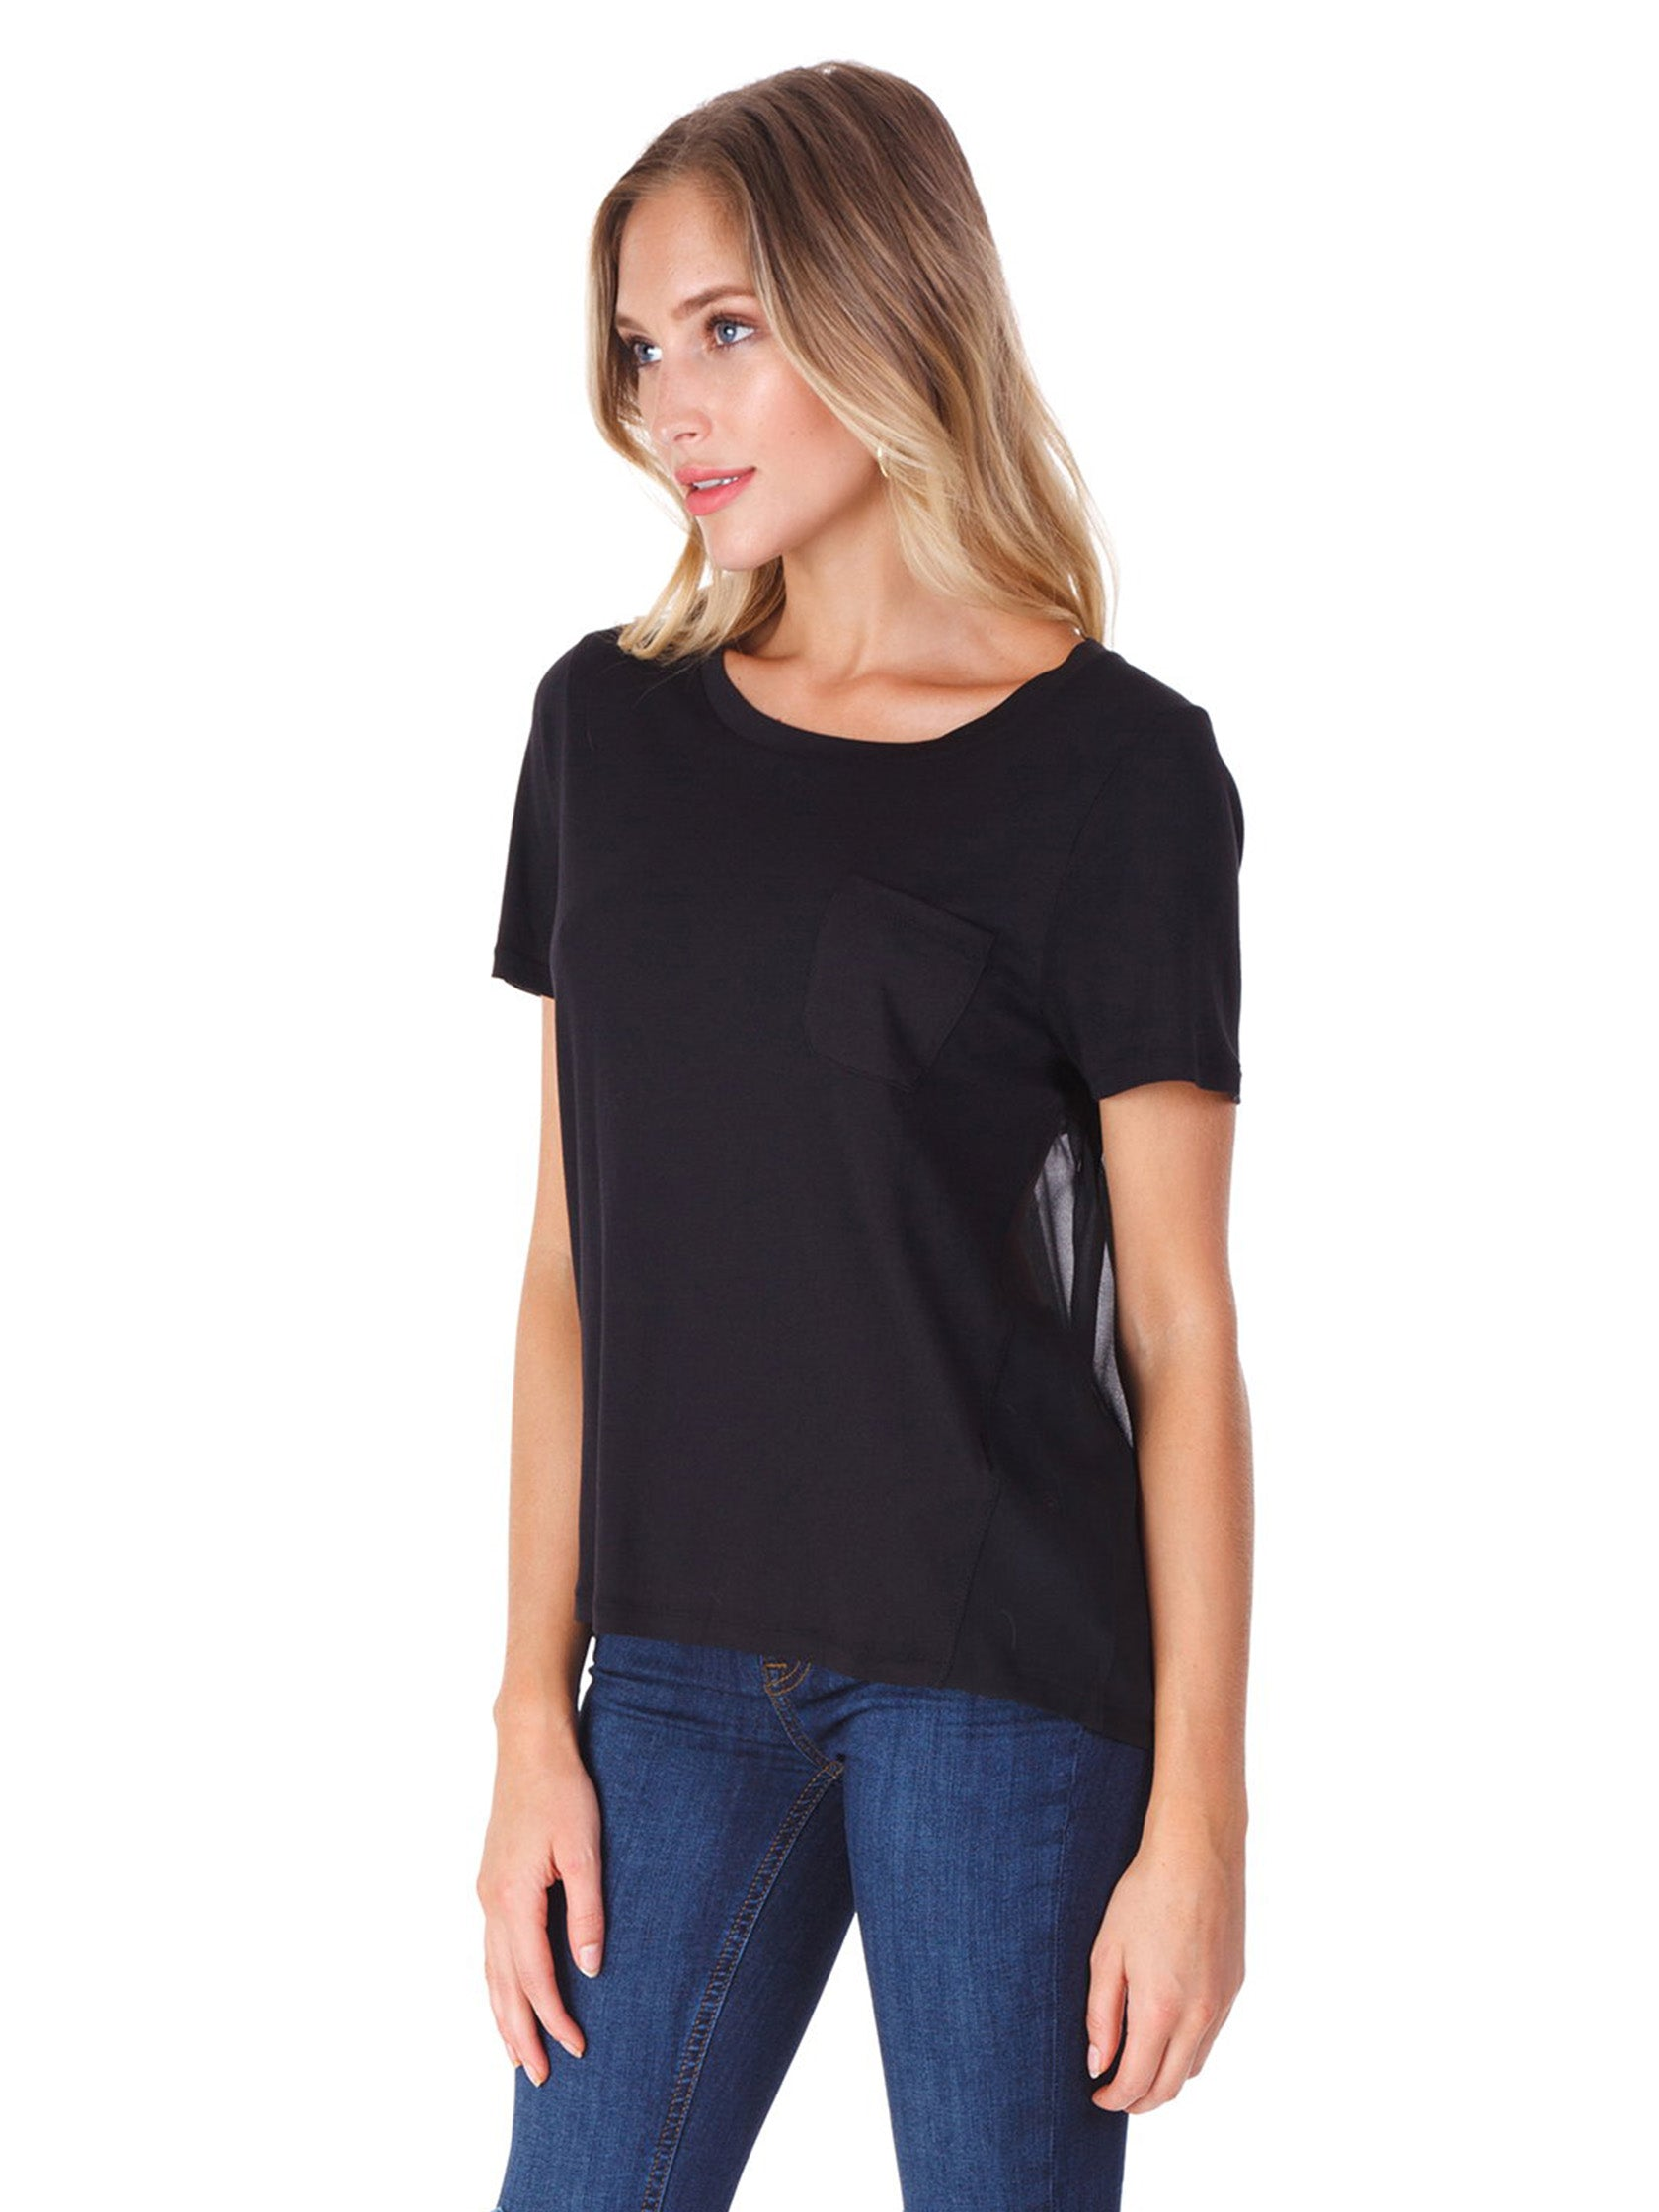 Women wearing a top rental from French Connection called Crepe Light Raw Edge Top